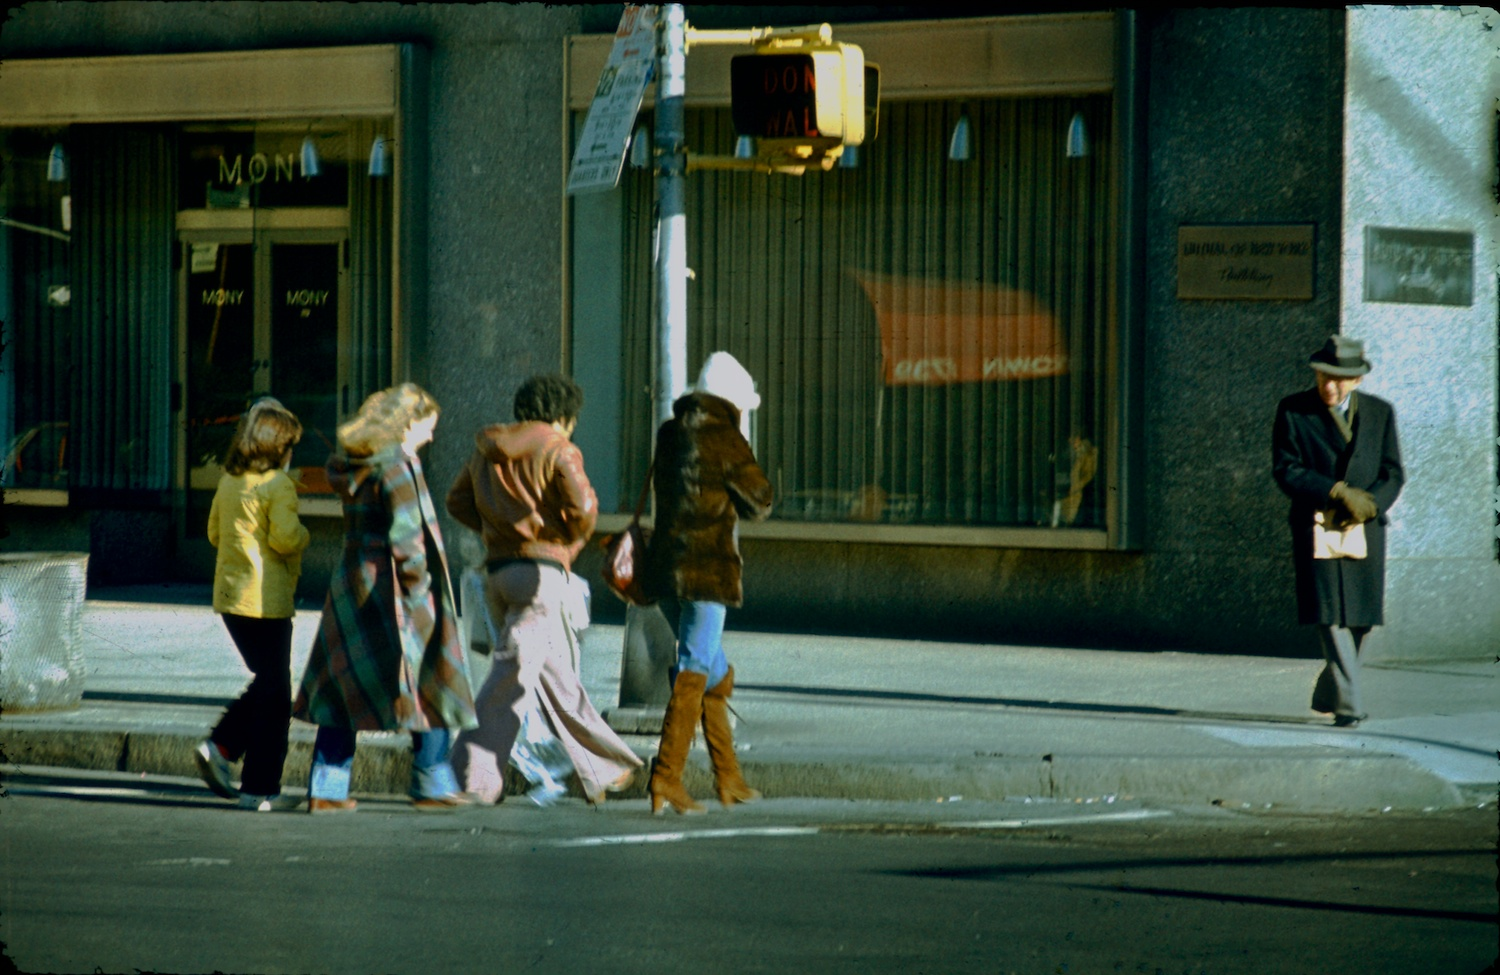 New York City 1978 Naked By Daylight - Flashbak-8830